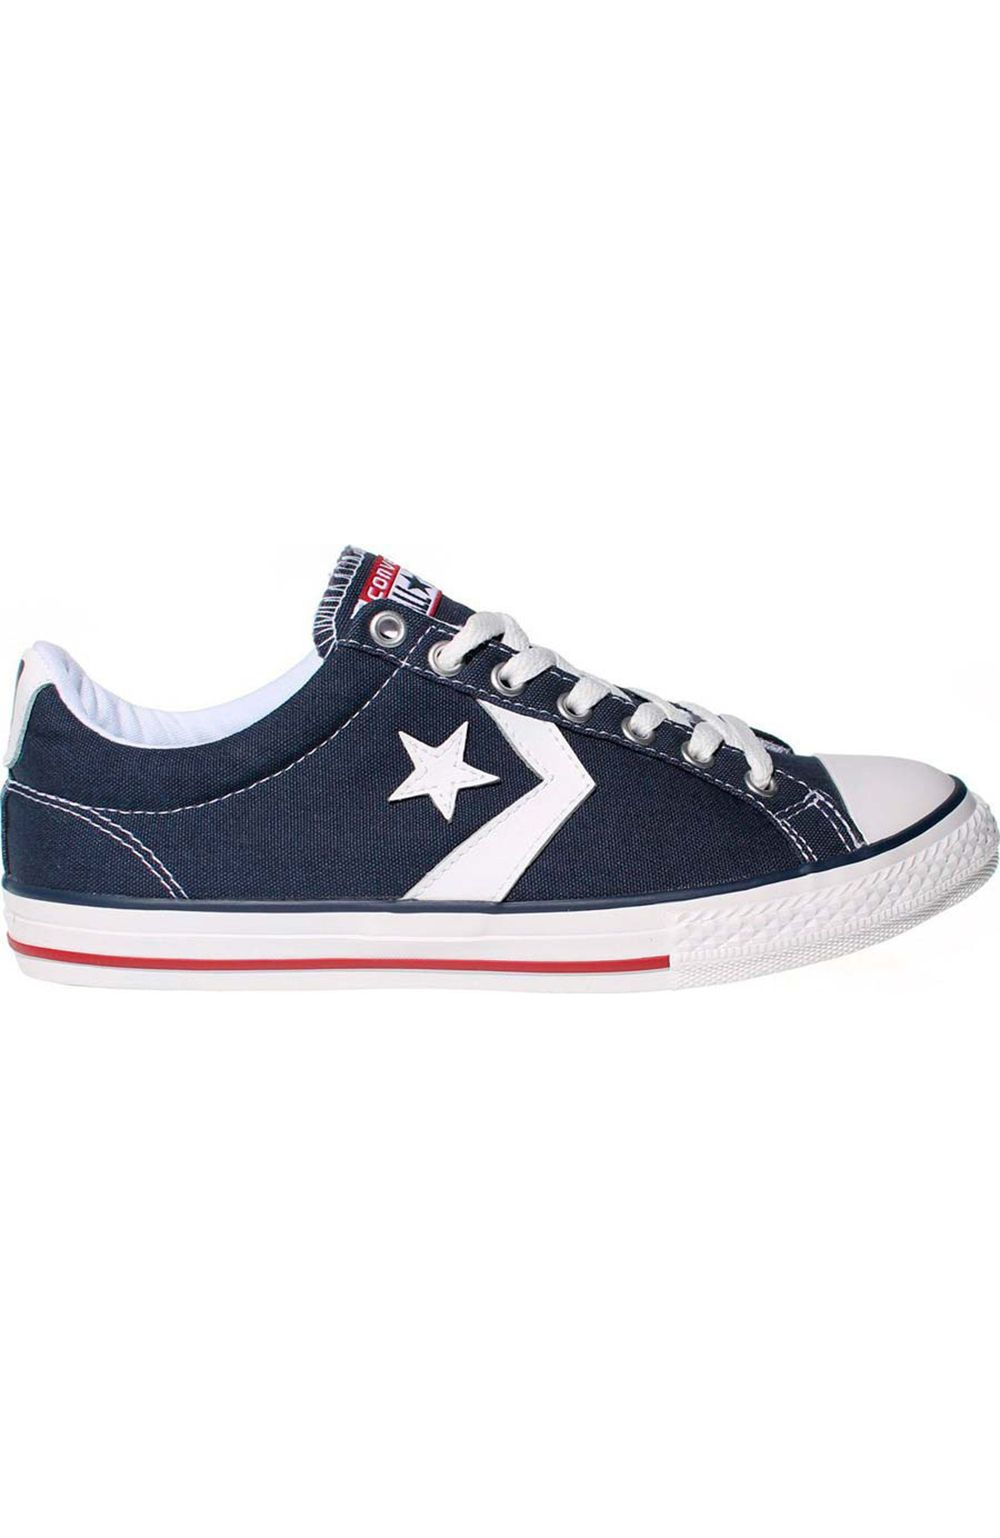 Tenis Converse STAR PLAYER EV Navy/White